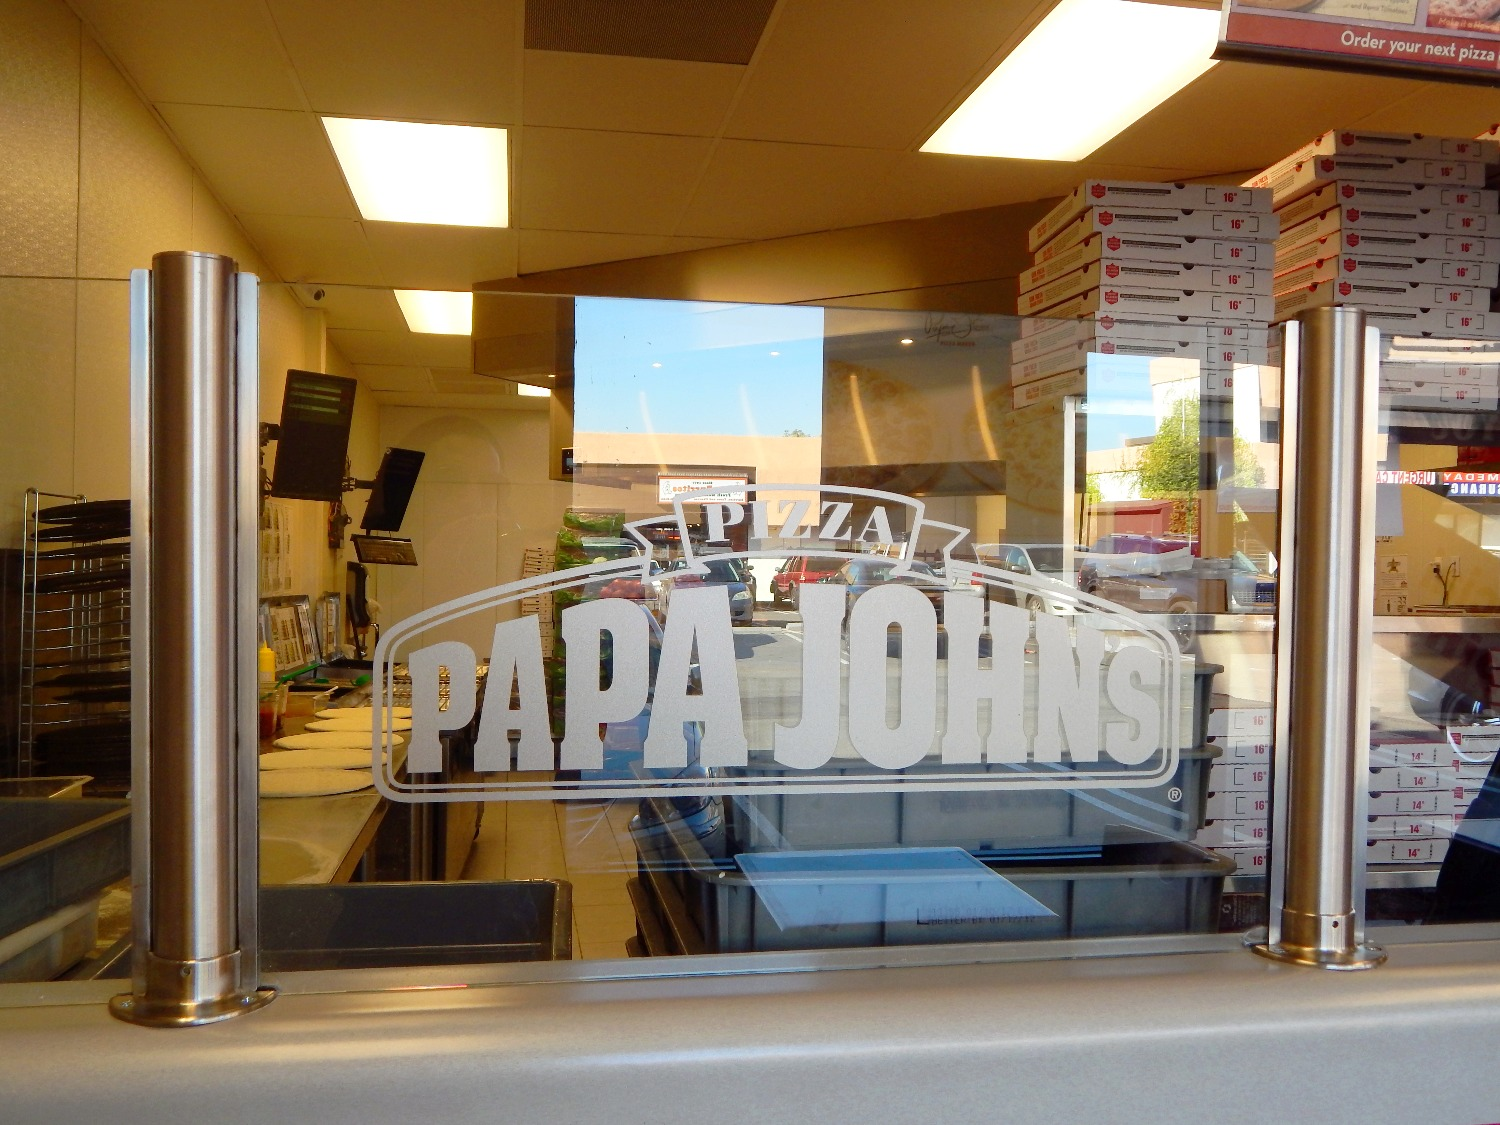 Papa John's tenant improvement